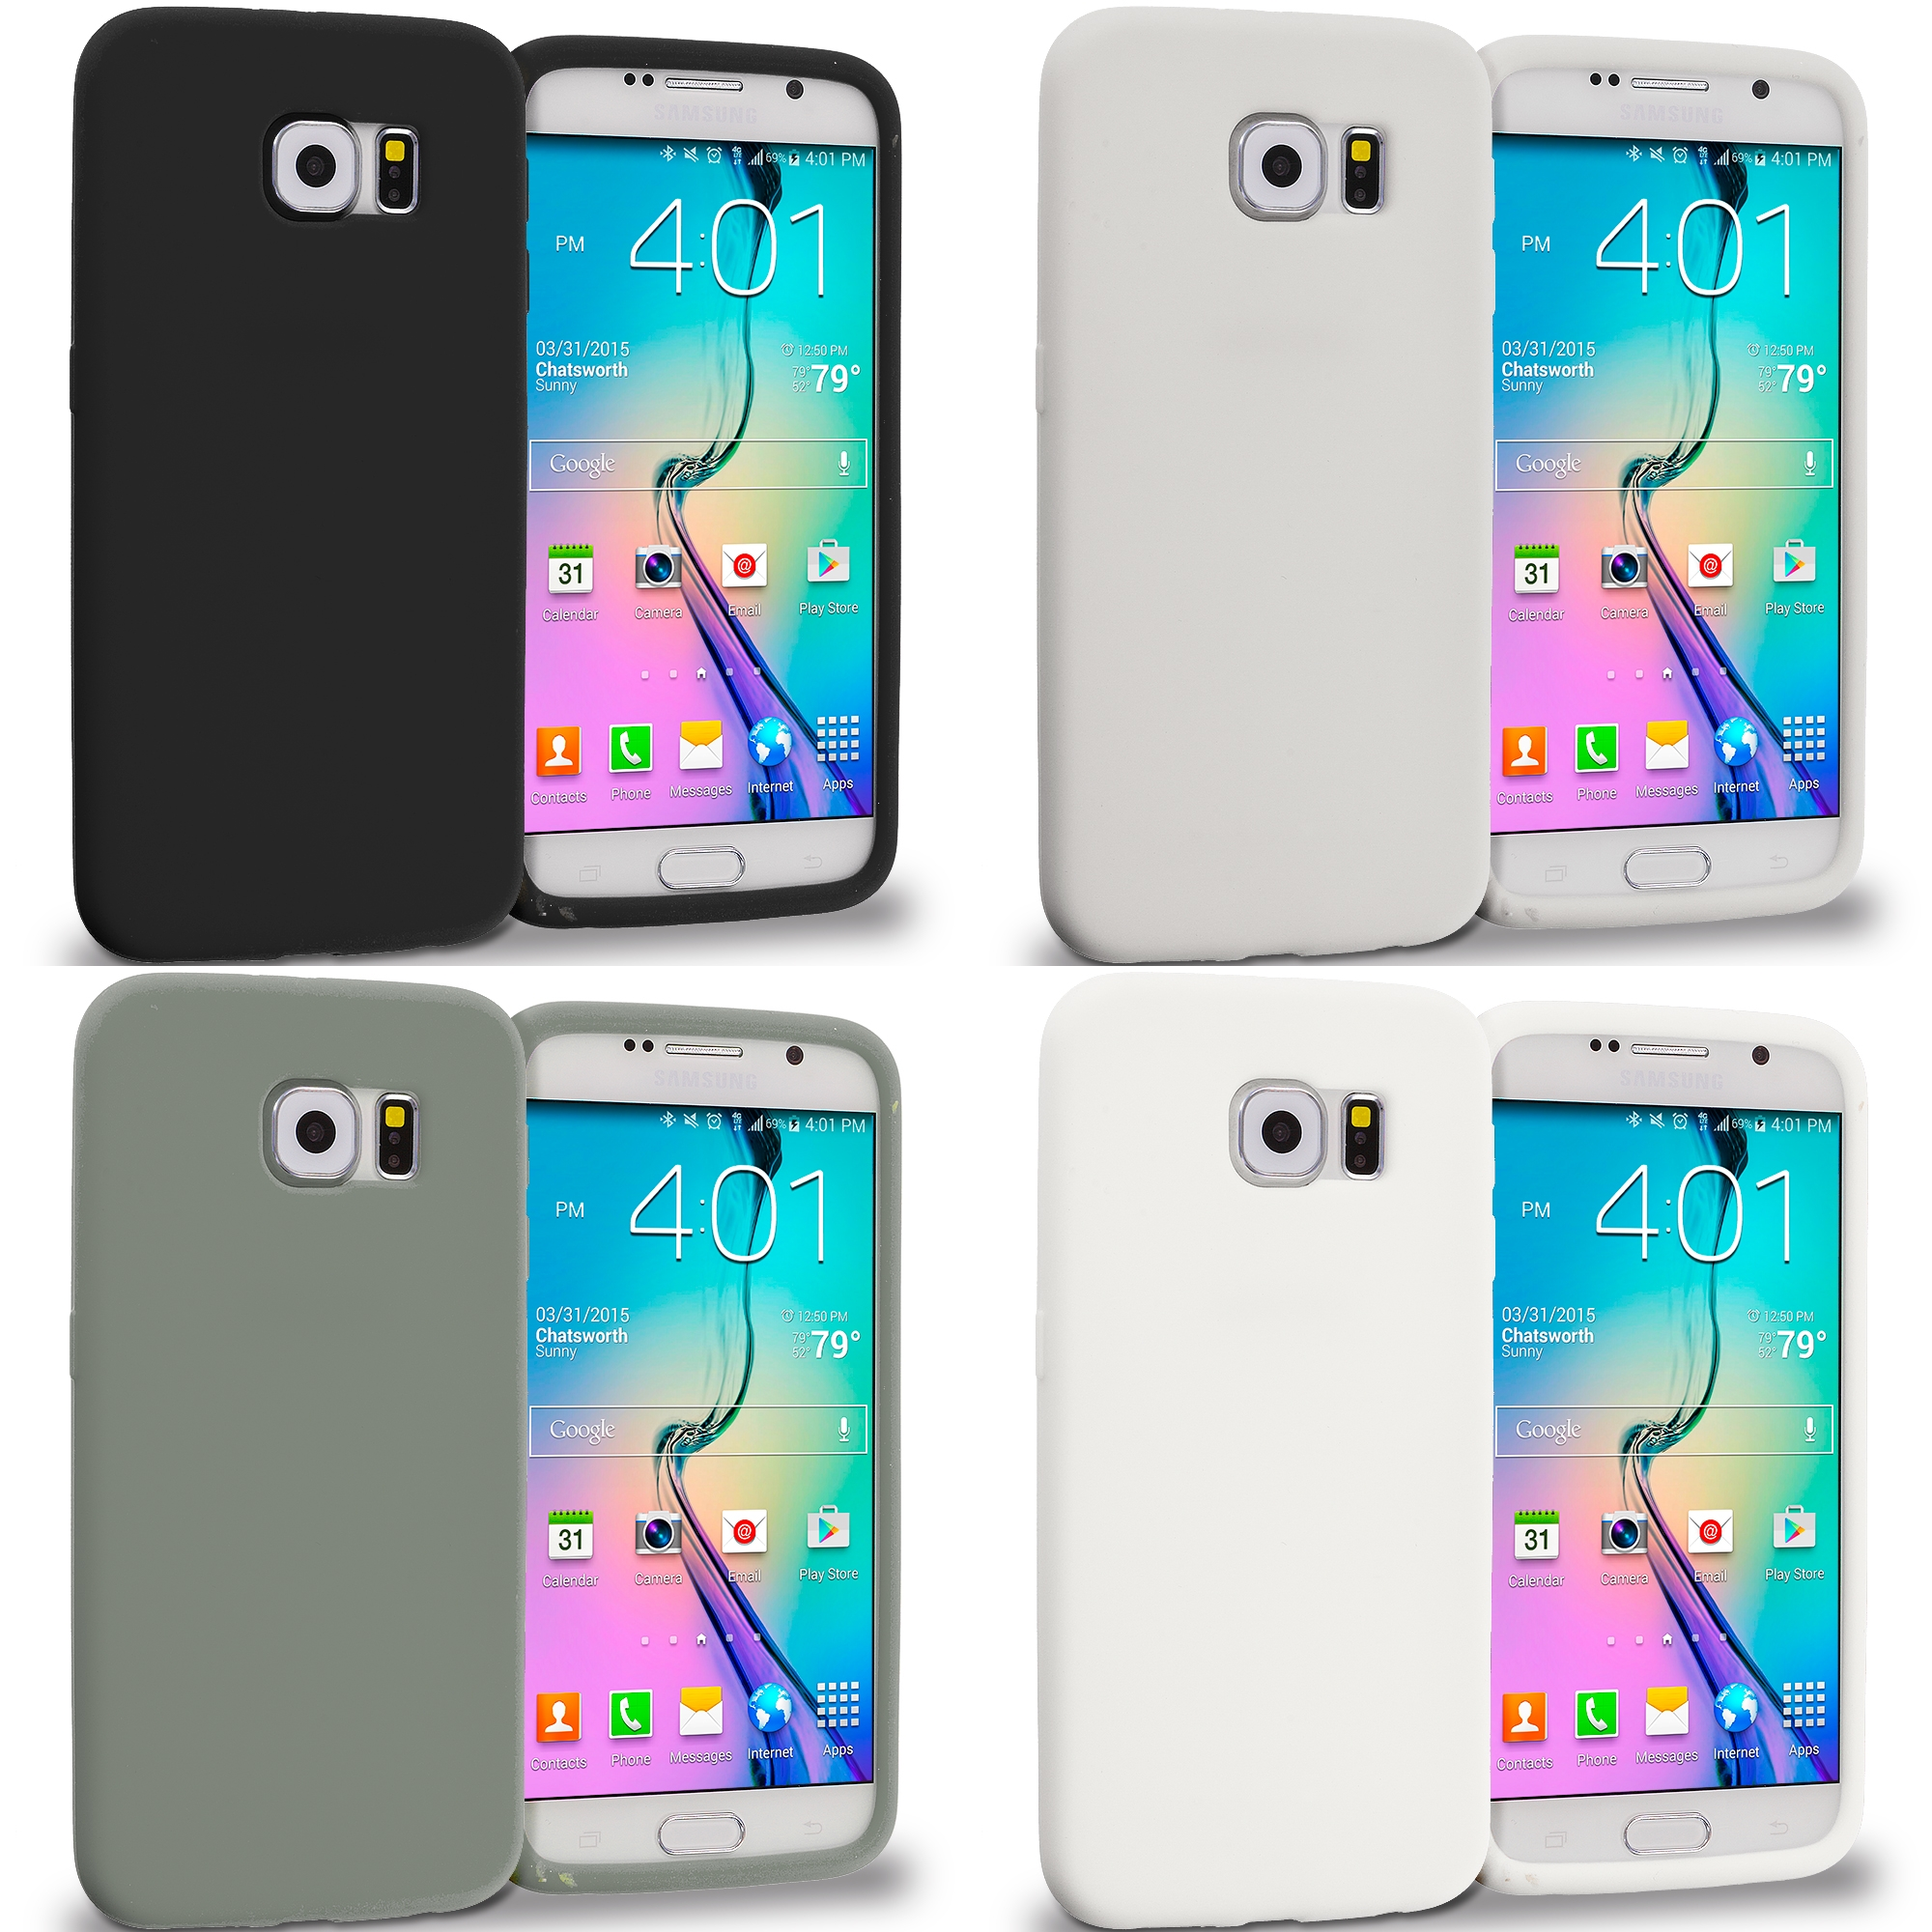 Samsung Galaxy S6 Combo Pack : Black Silicone Soft Skin Rubber Case Cover